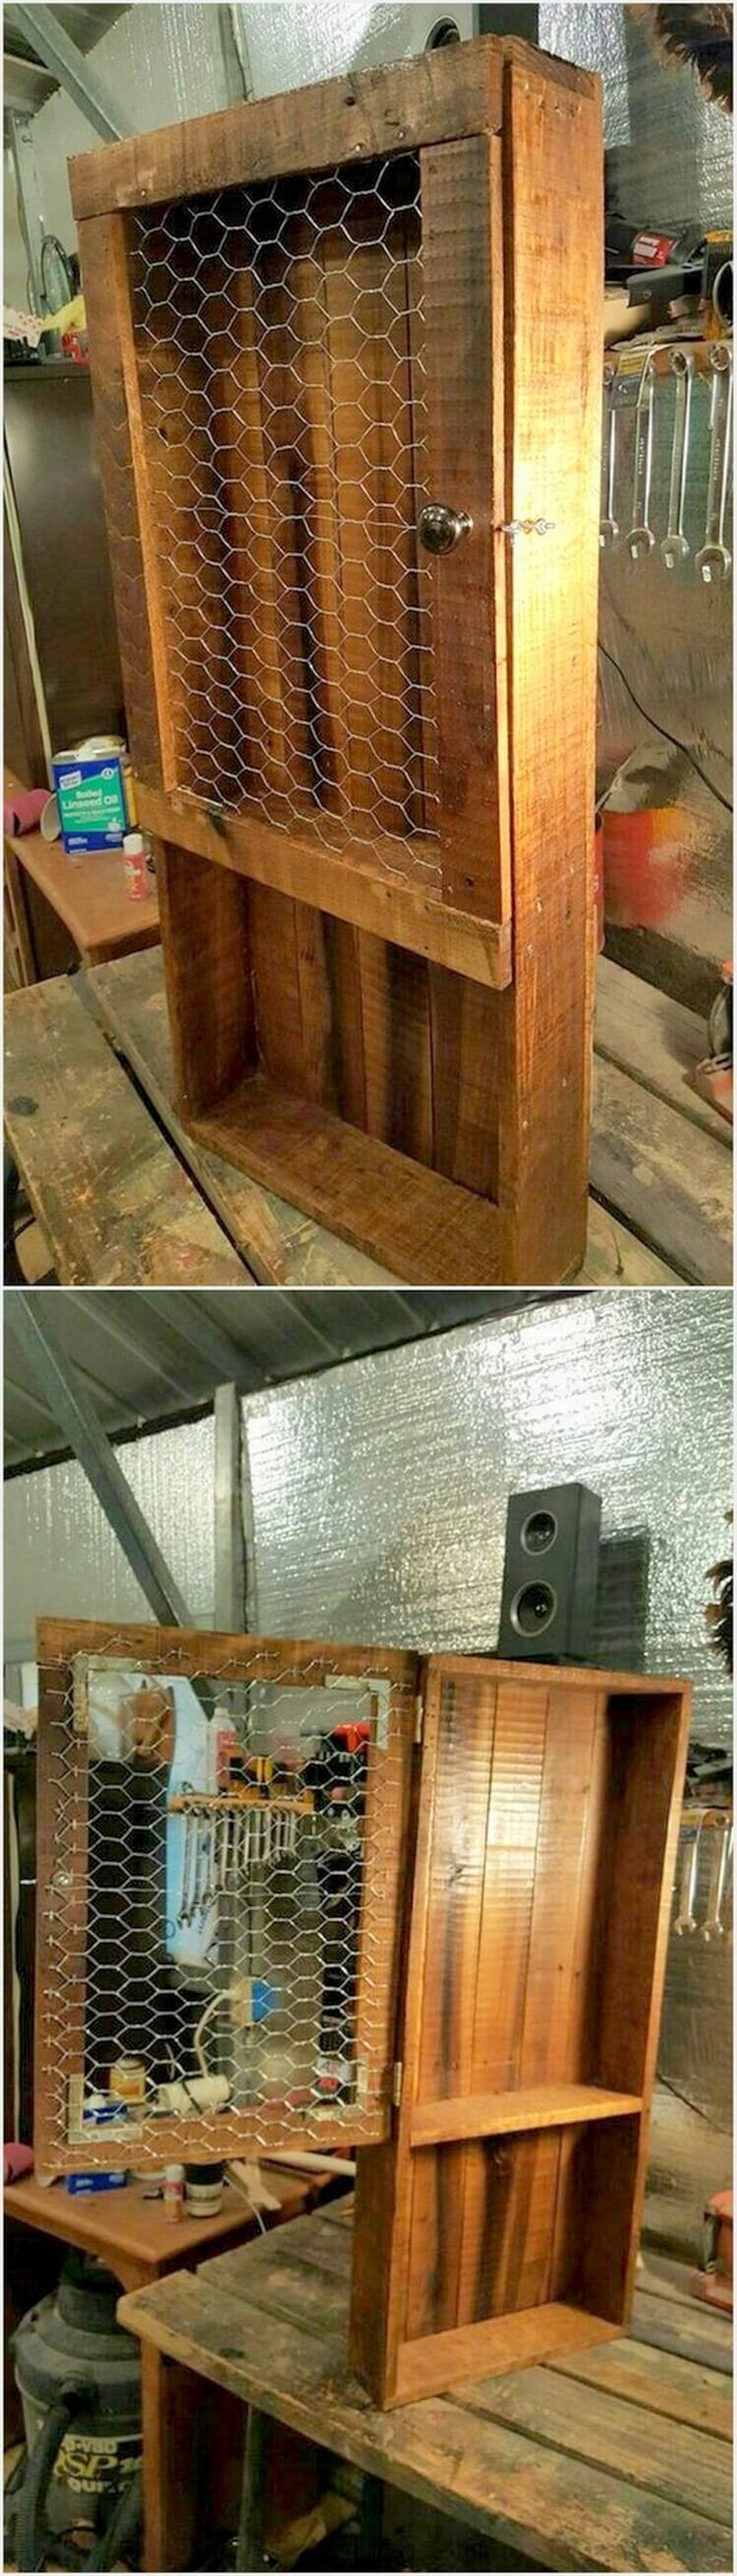 Exciting Ways to Reuse Old Shipping Pallets | Pallet Wood ...